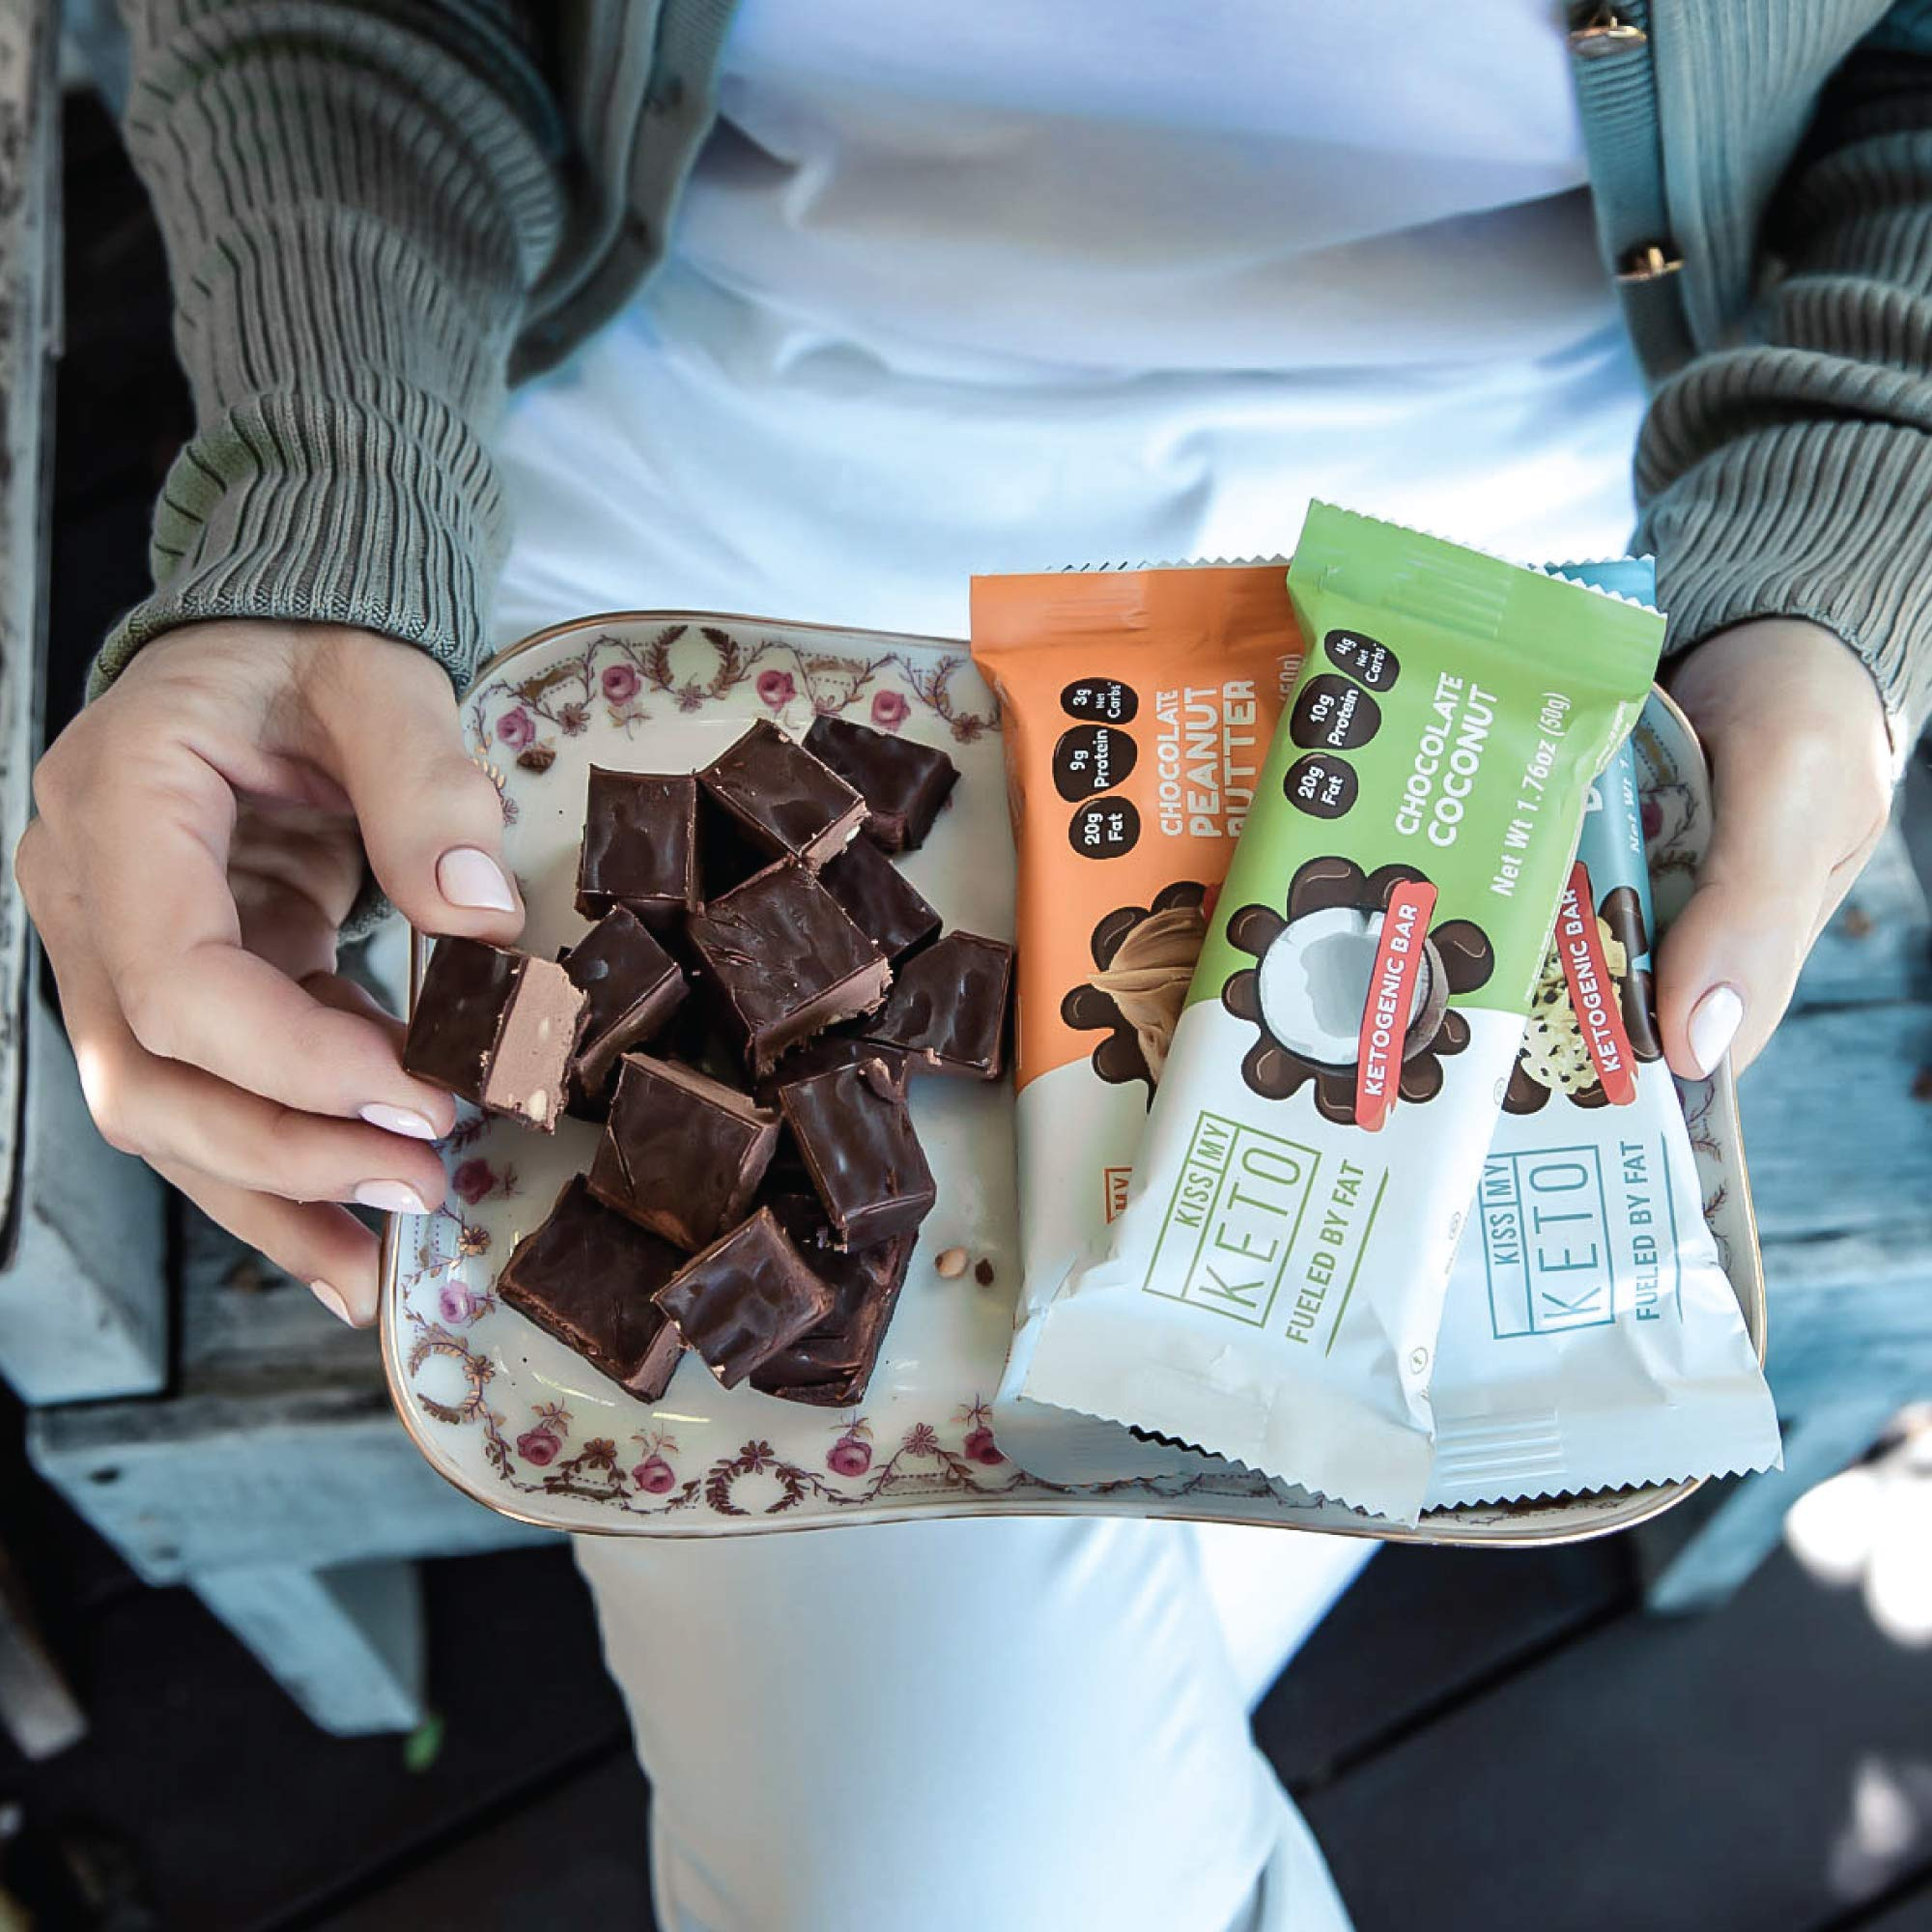 Kiss My Keto Snacks Keto Bars - Keto Chocolate Coconut (3 Pack, 36 Bars), Nutritional Keto Food Bars, Paleo, Low Carb/Glycemic Keto Friendly Foods, All Natural On-The-Go Snacks, 4g Net Carbs by Kiss My Keto